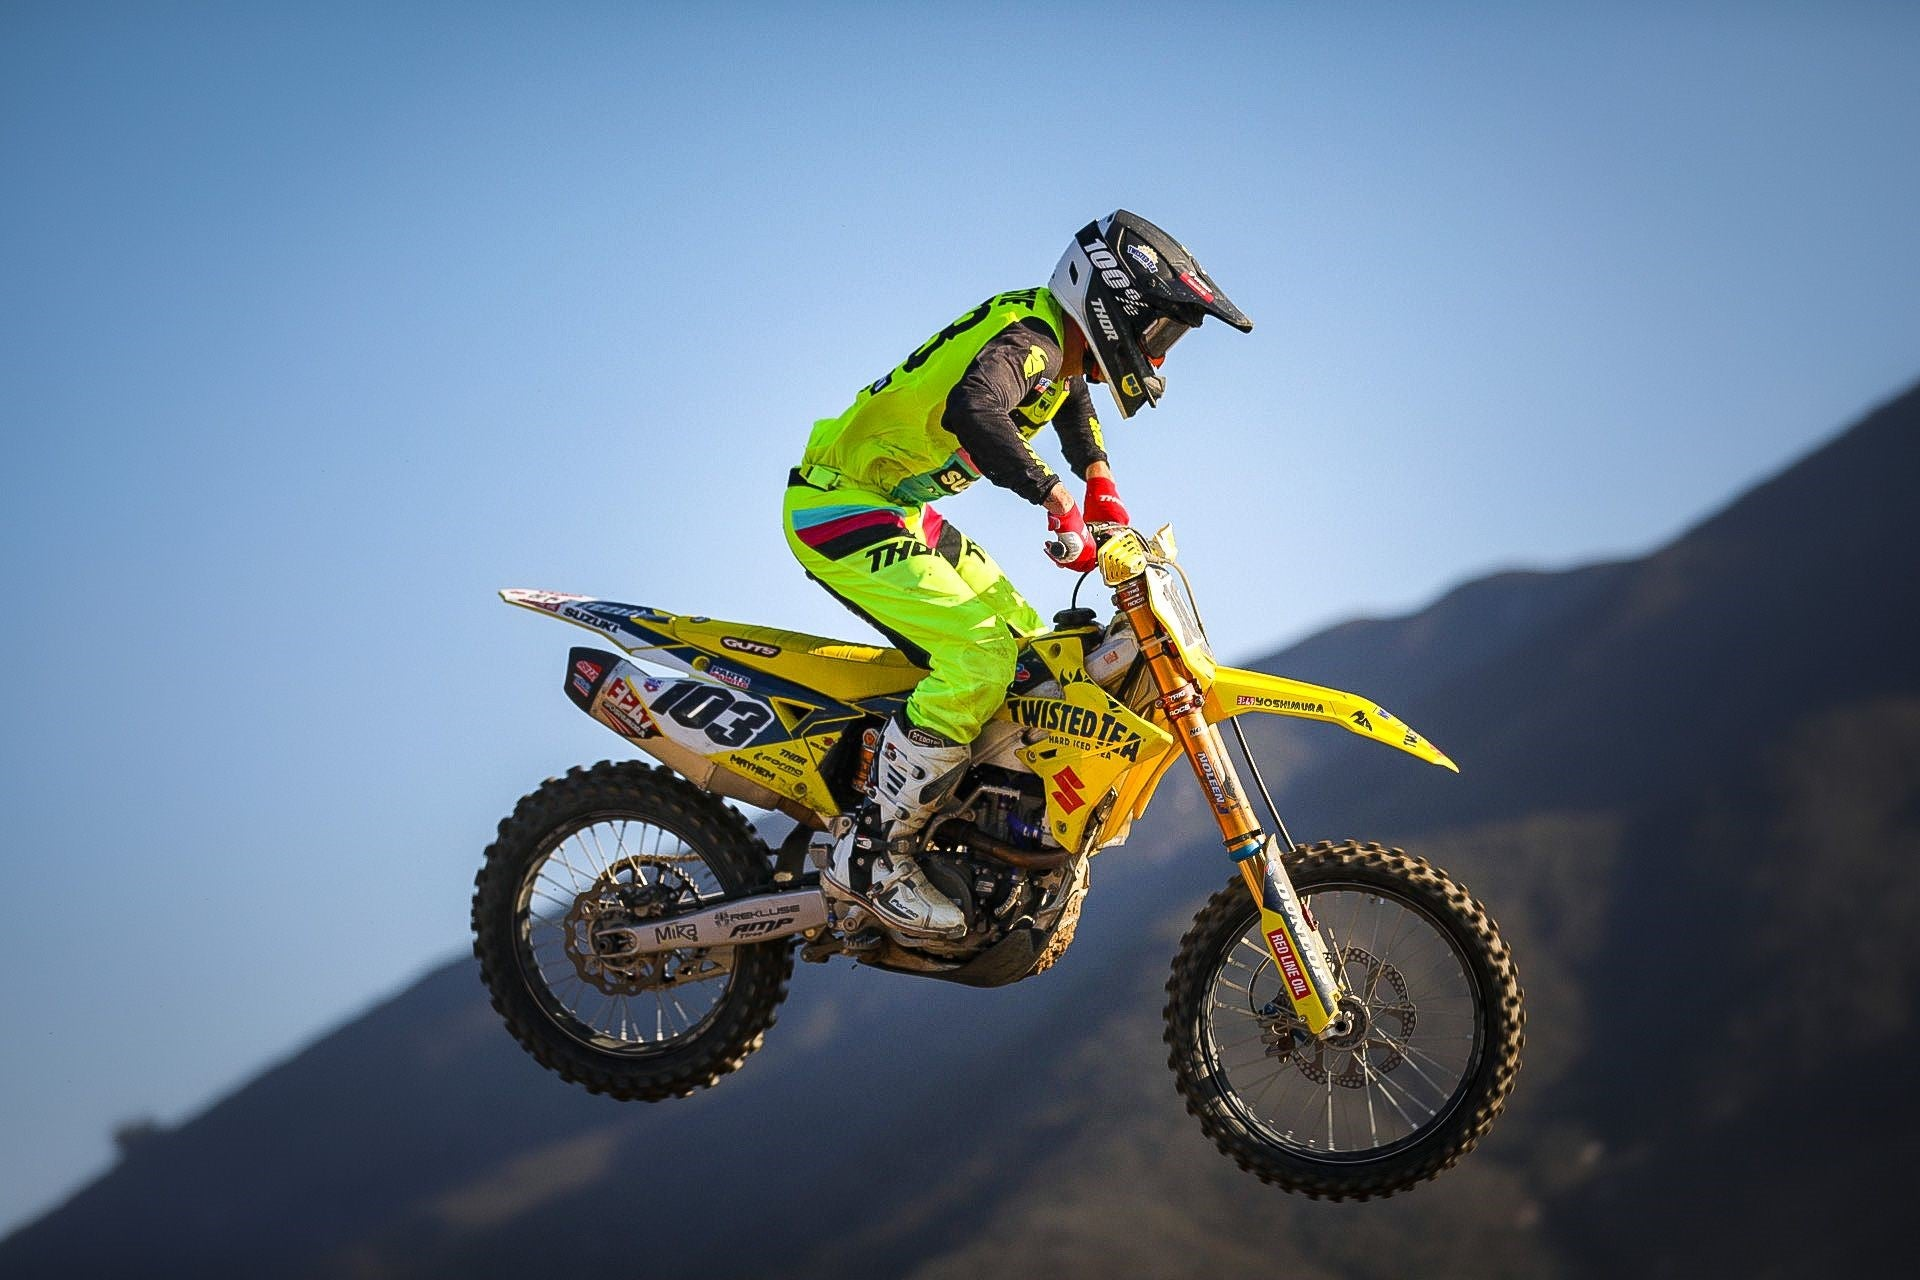 Max Anstie (#103) finishes in 9th place in moto#1